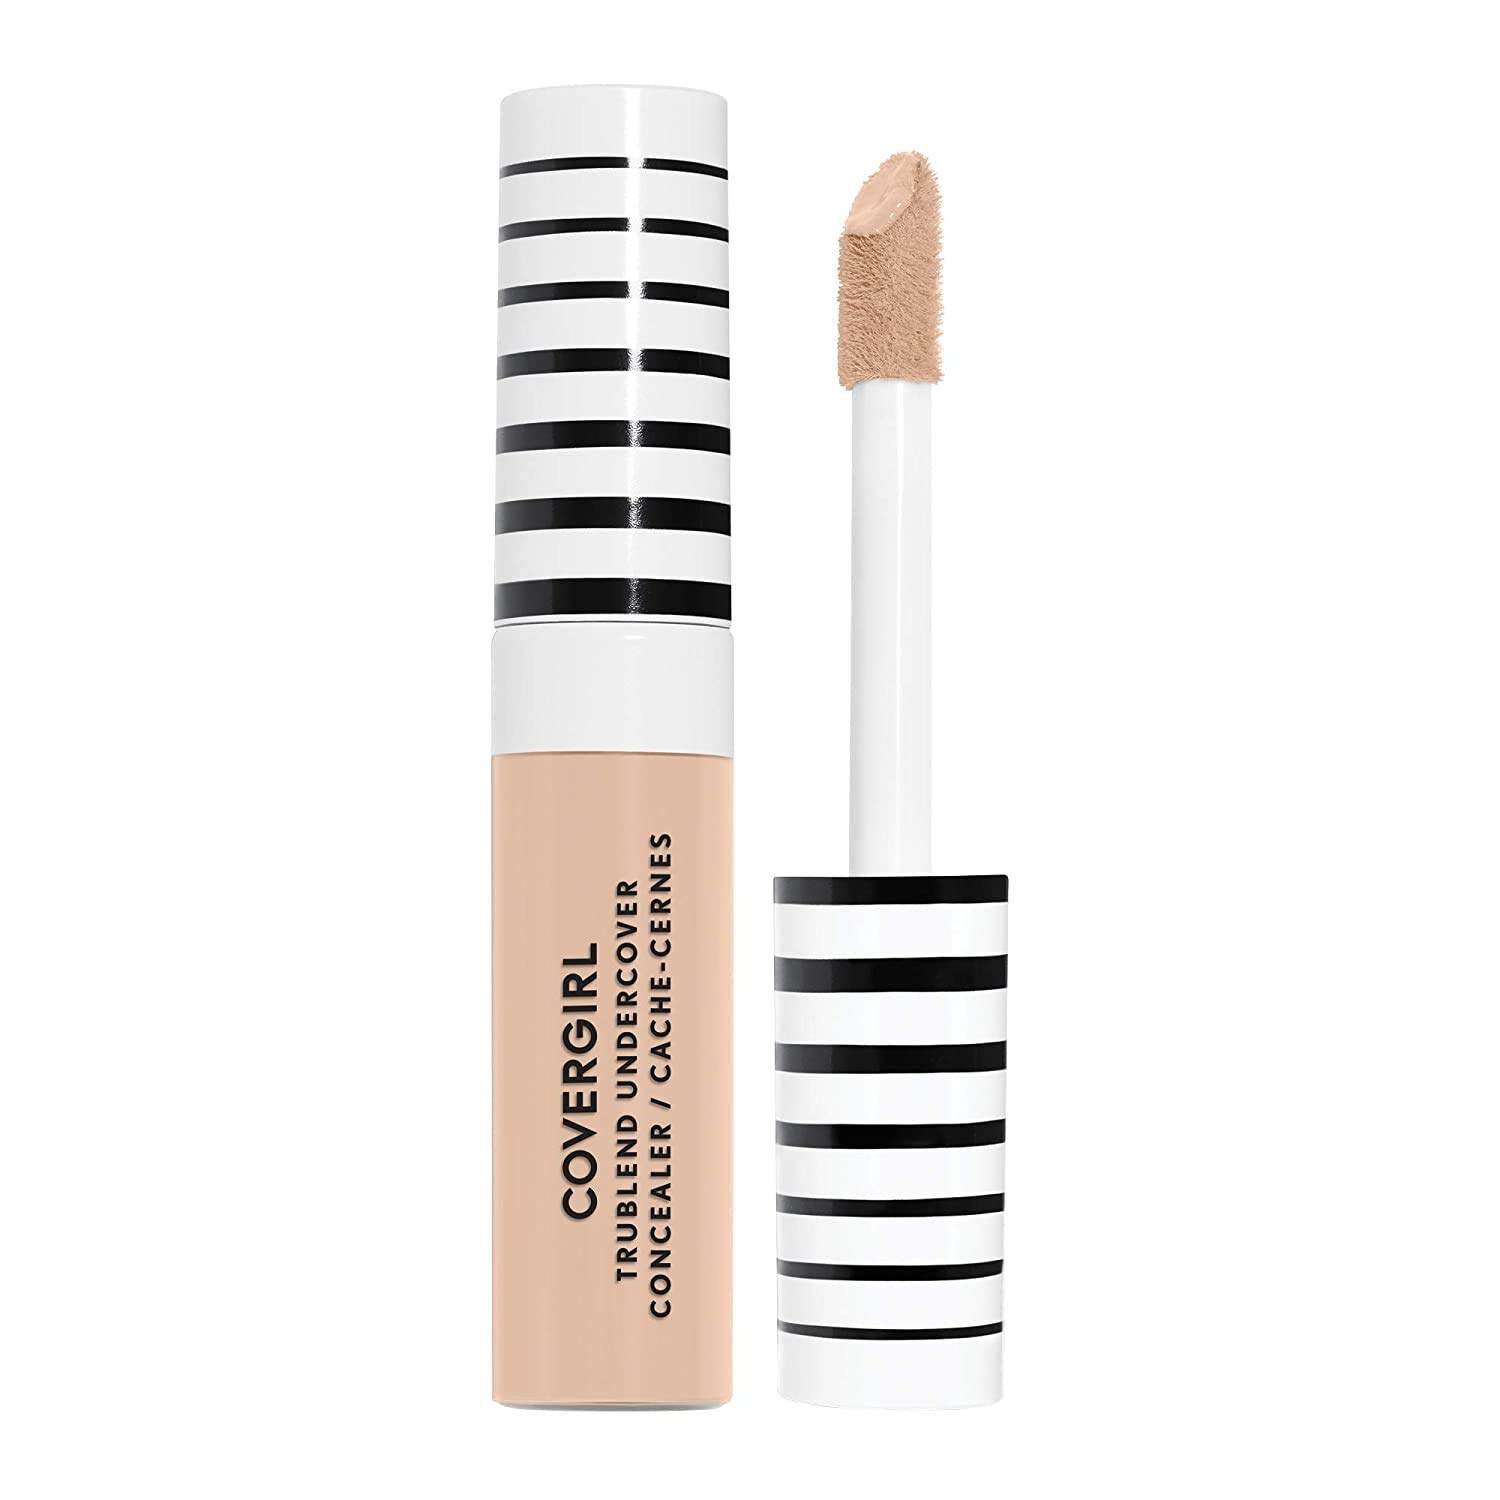 COVERGIRL 25% OFF TruBlend Undercover Concealer Pack Ivory Classic store of